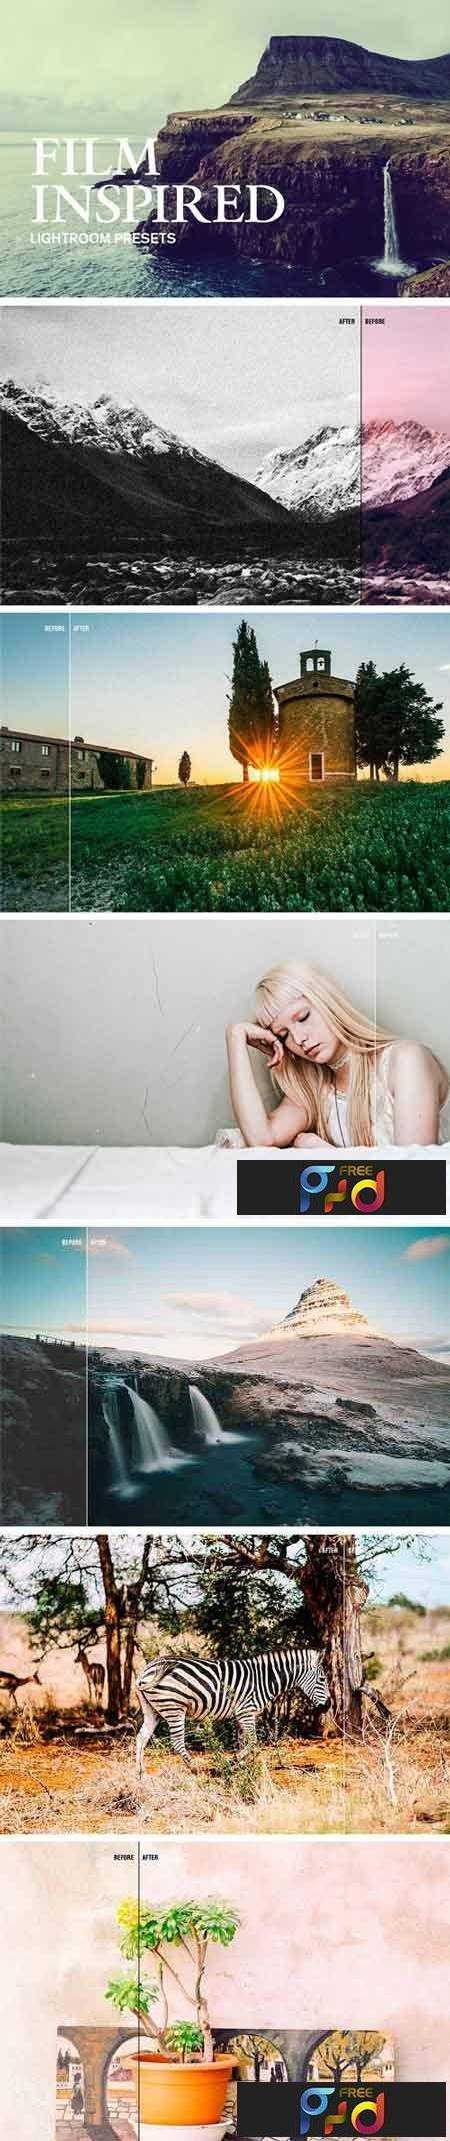 1709143 Film Inspired Lightroom Presets 2085674 1